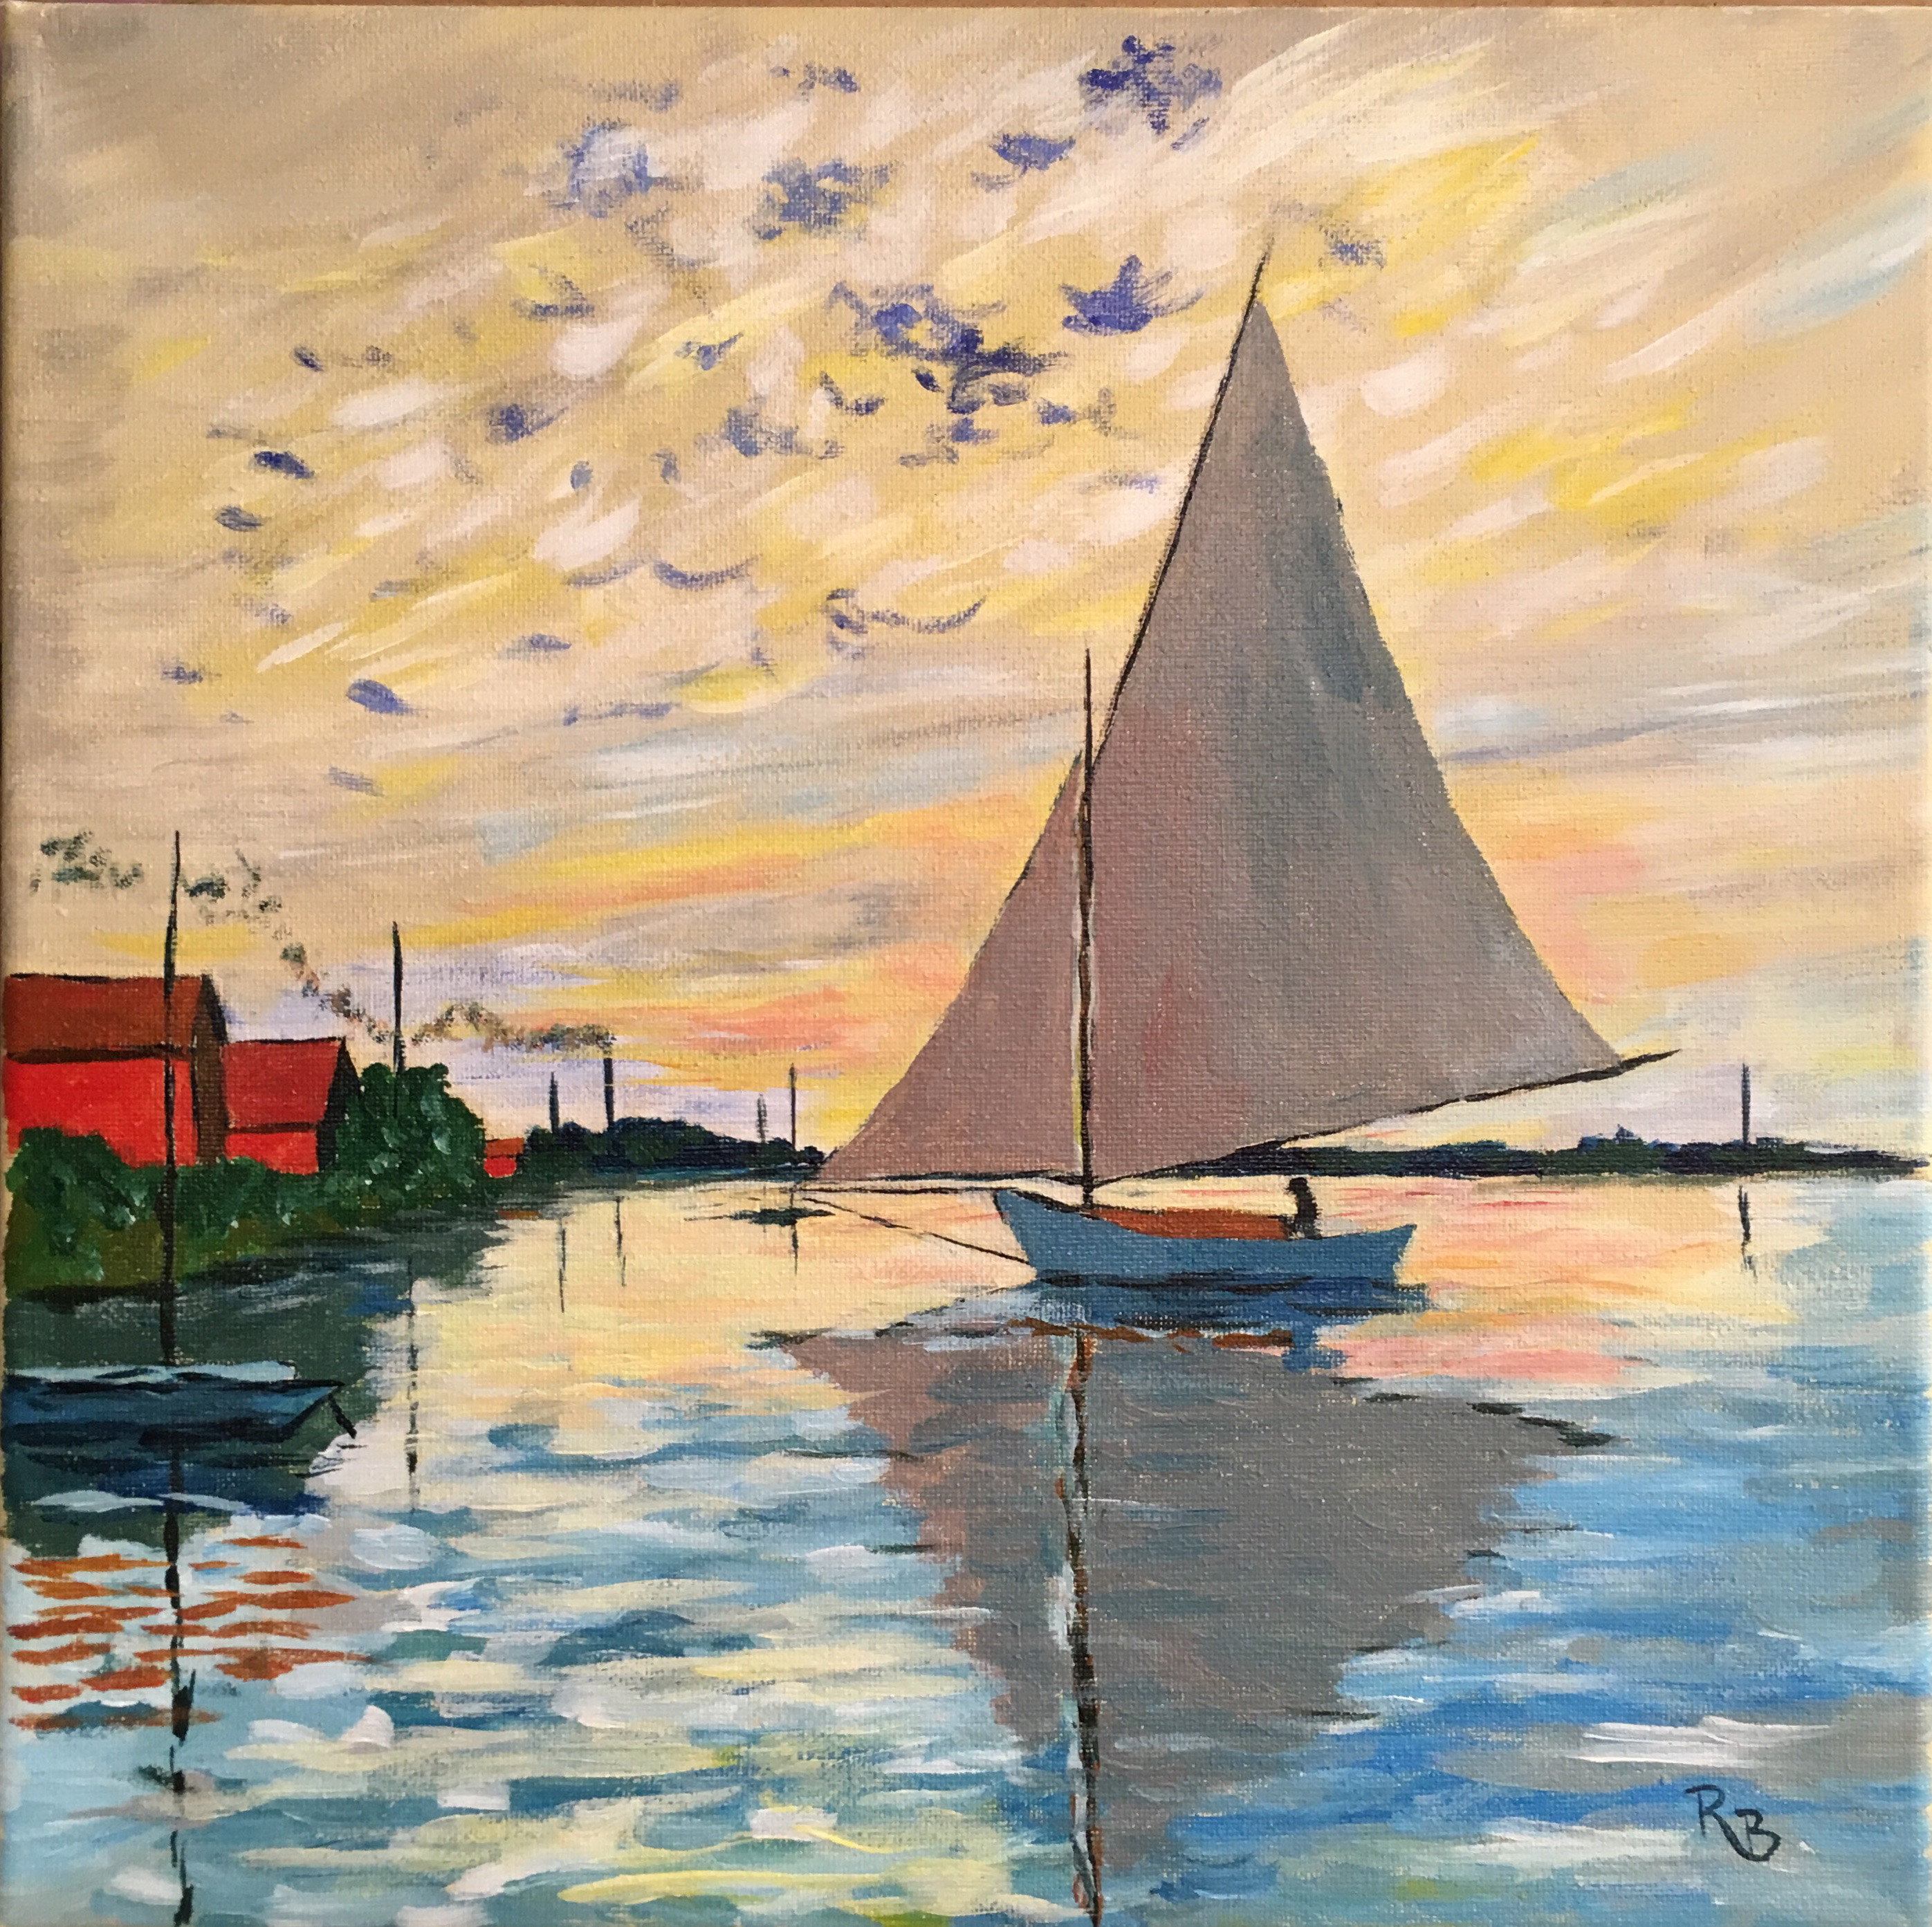 Sailboat - After a Monet Painting - Acrylic Roy Beckemeyer